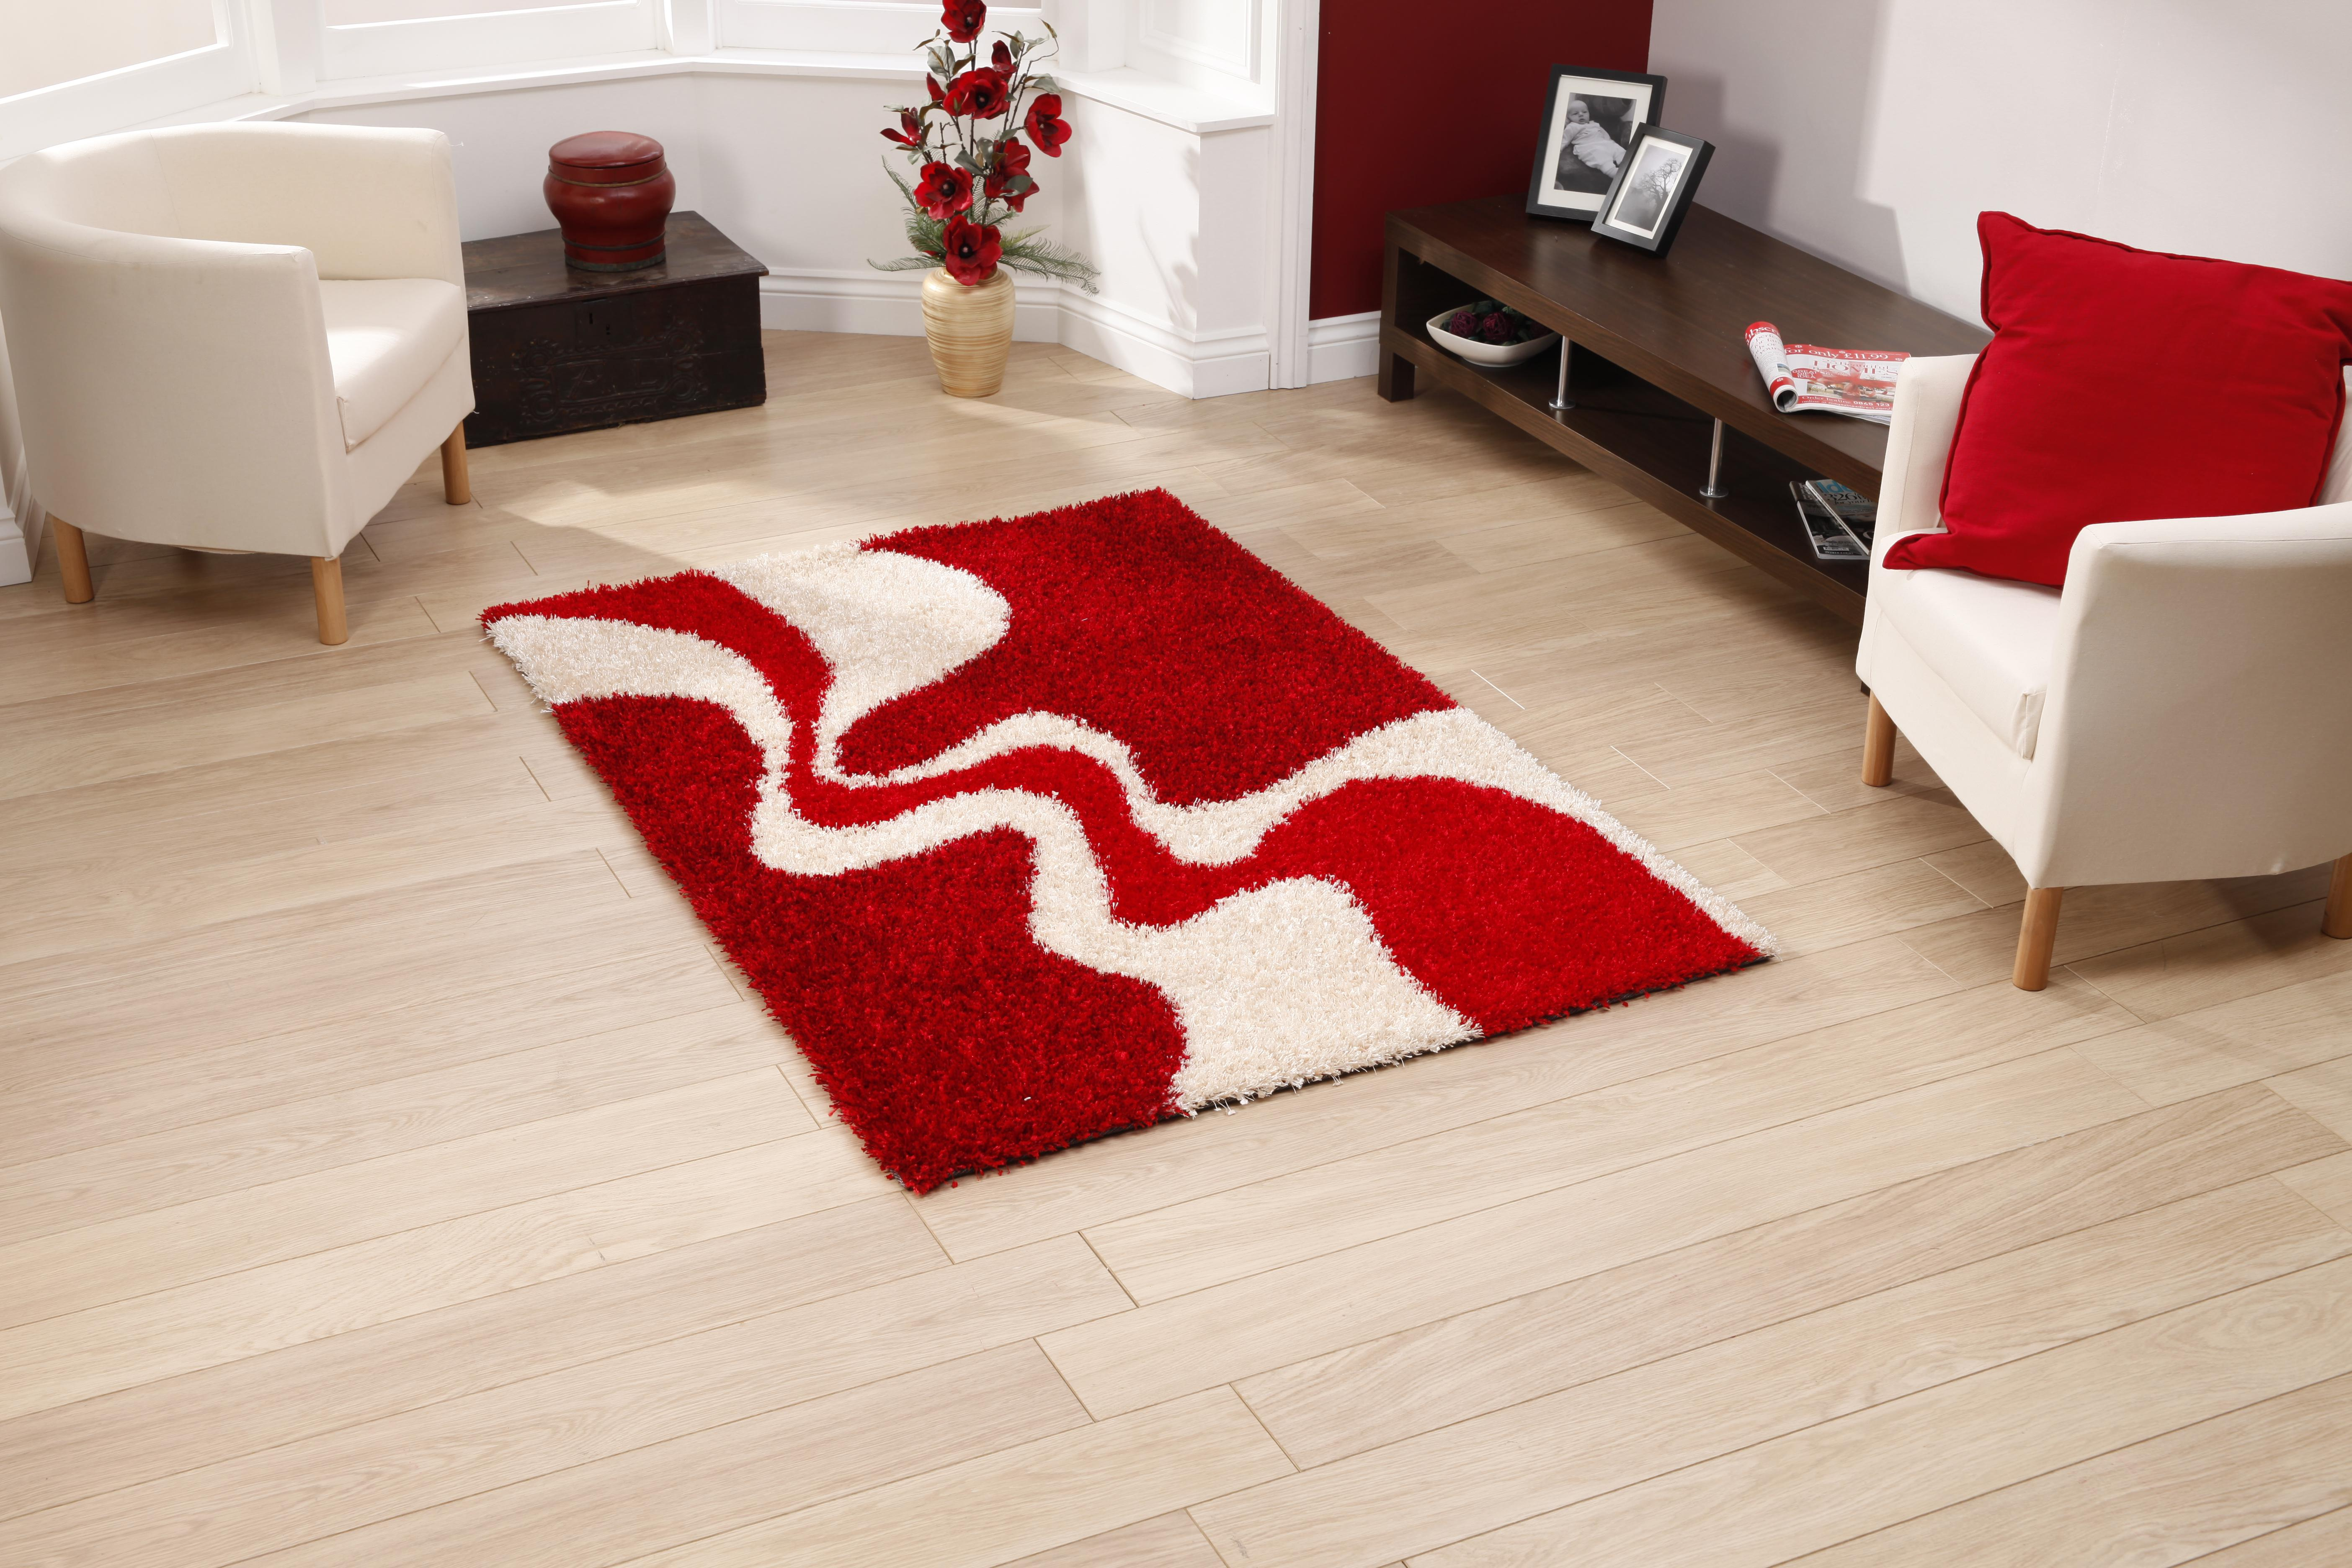 carpet designs for home modern carpets and rugs: red and white design TXCCIQH